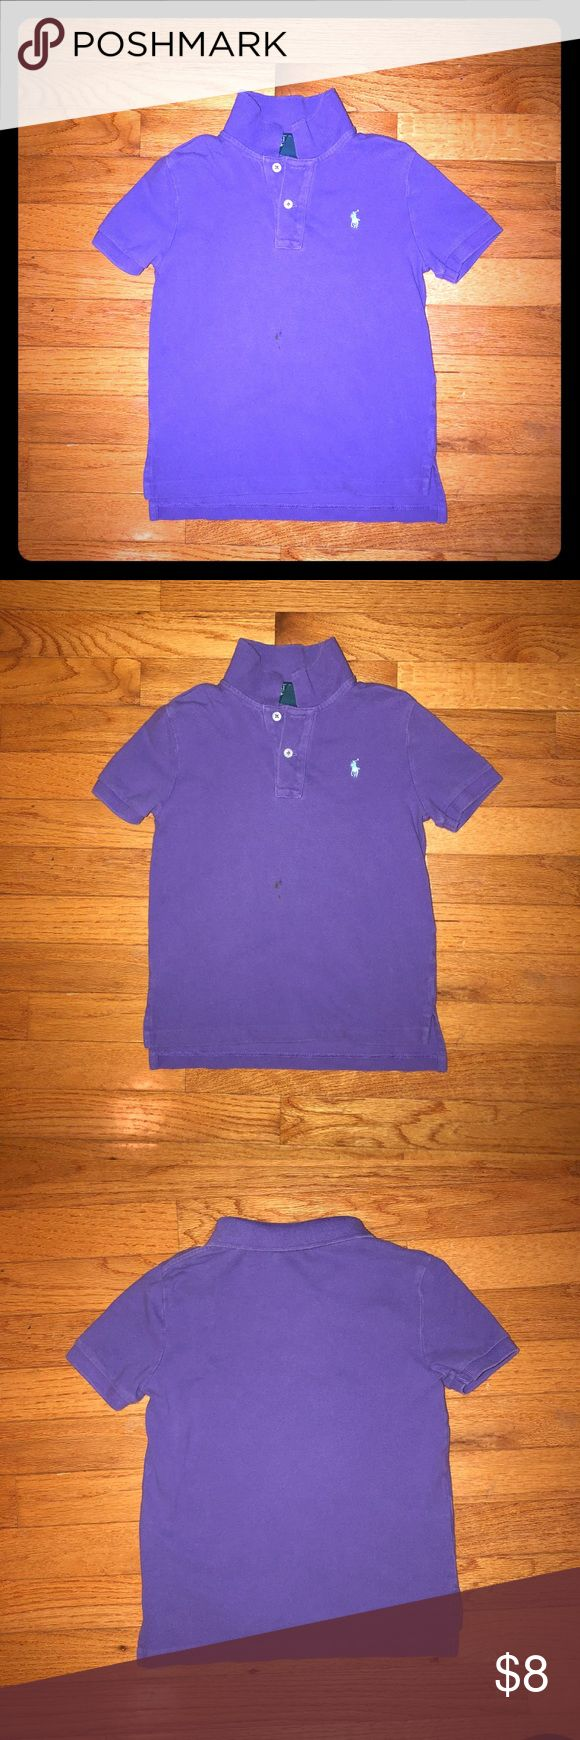 Boys' Purple Polo Shirt Size 5 Little boys' purple Polo Shirt - Used and in good condition except for small marker spot indicated in last picture. Camera flash made it look more noticeable than it really is when on. Otherwise in great condition. Smoke-free home. Polo by Ralph Lauren Shirts & Tops Polos